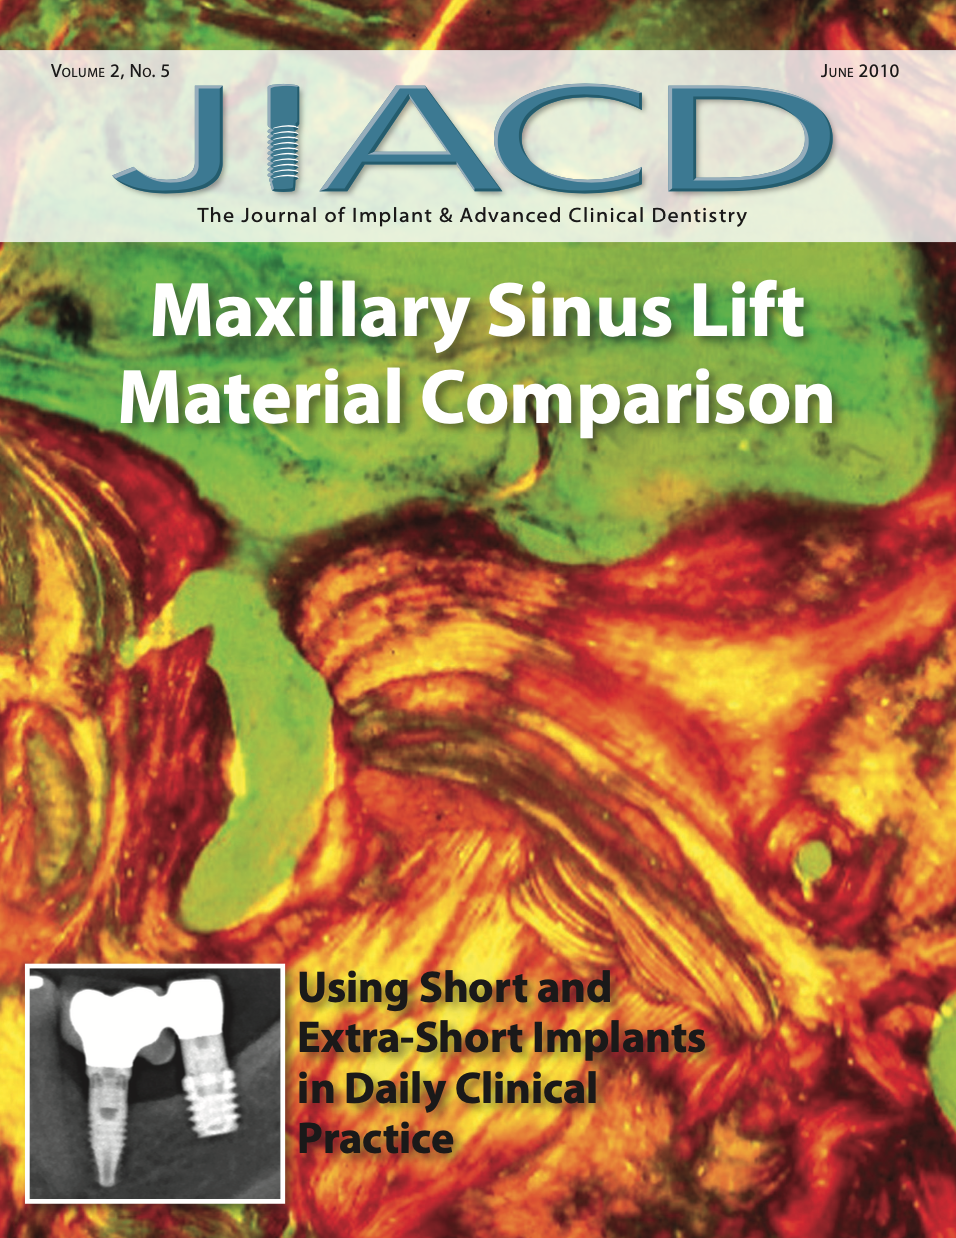 Maxillary Sinus Lift Material Comparison